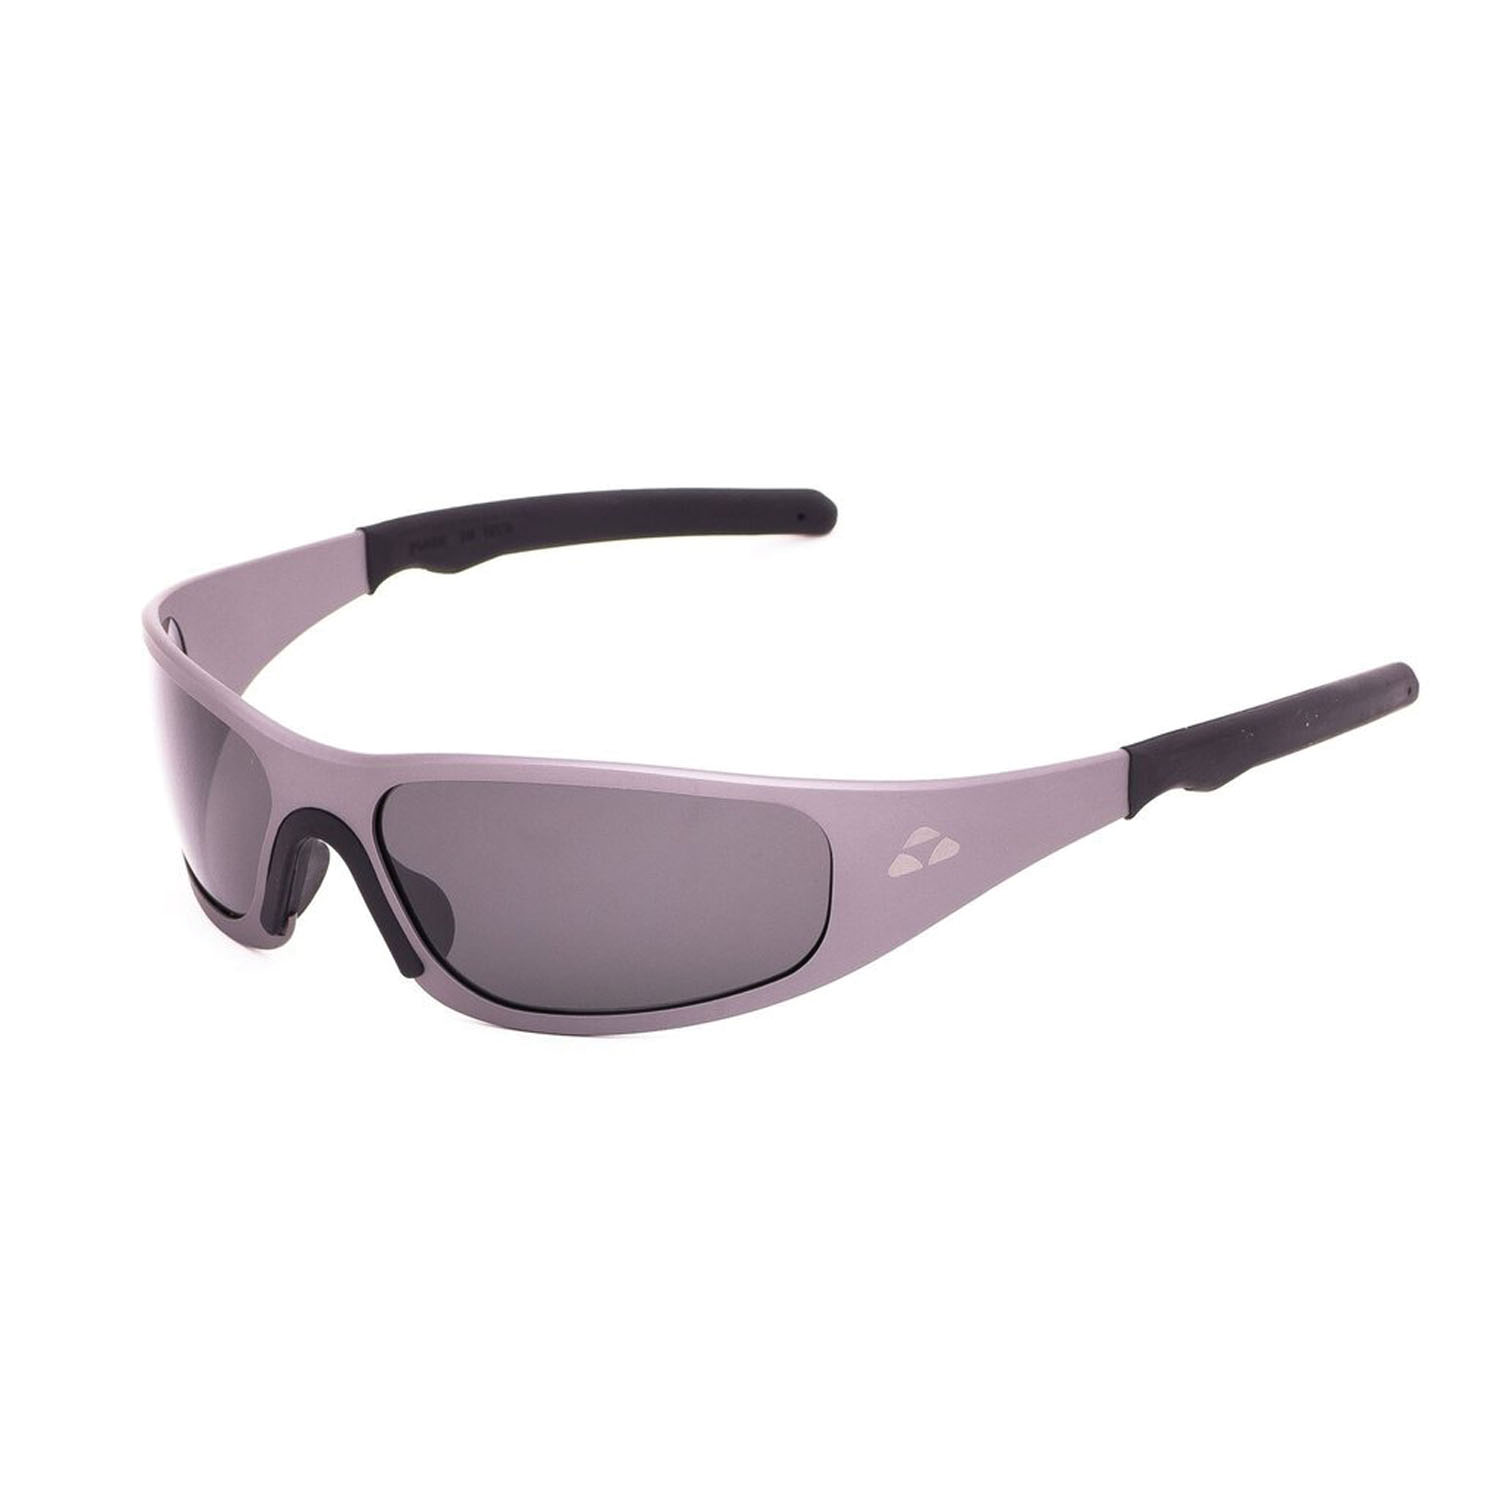 Liquid Eyewear Gasket Gun Metal w/ Smoke Non-Polarized Lens